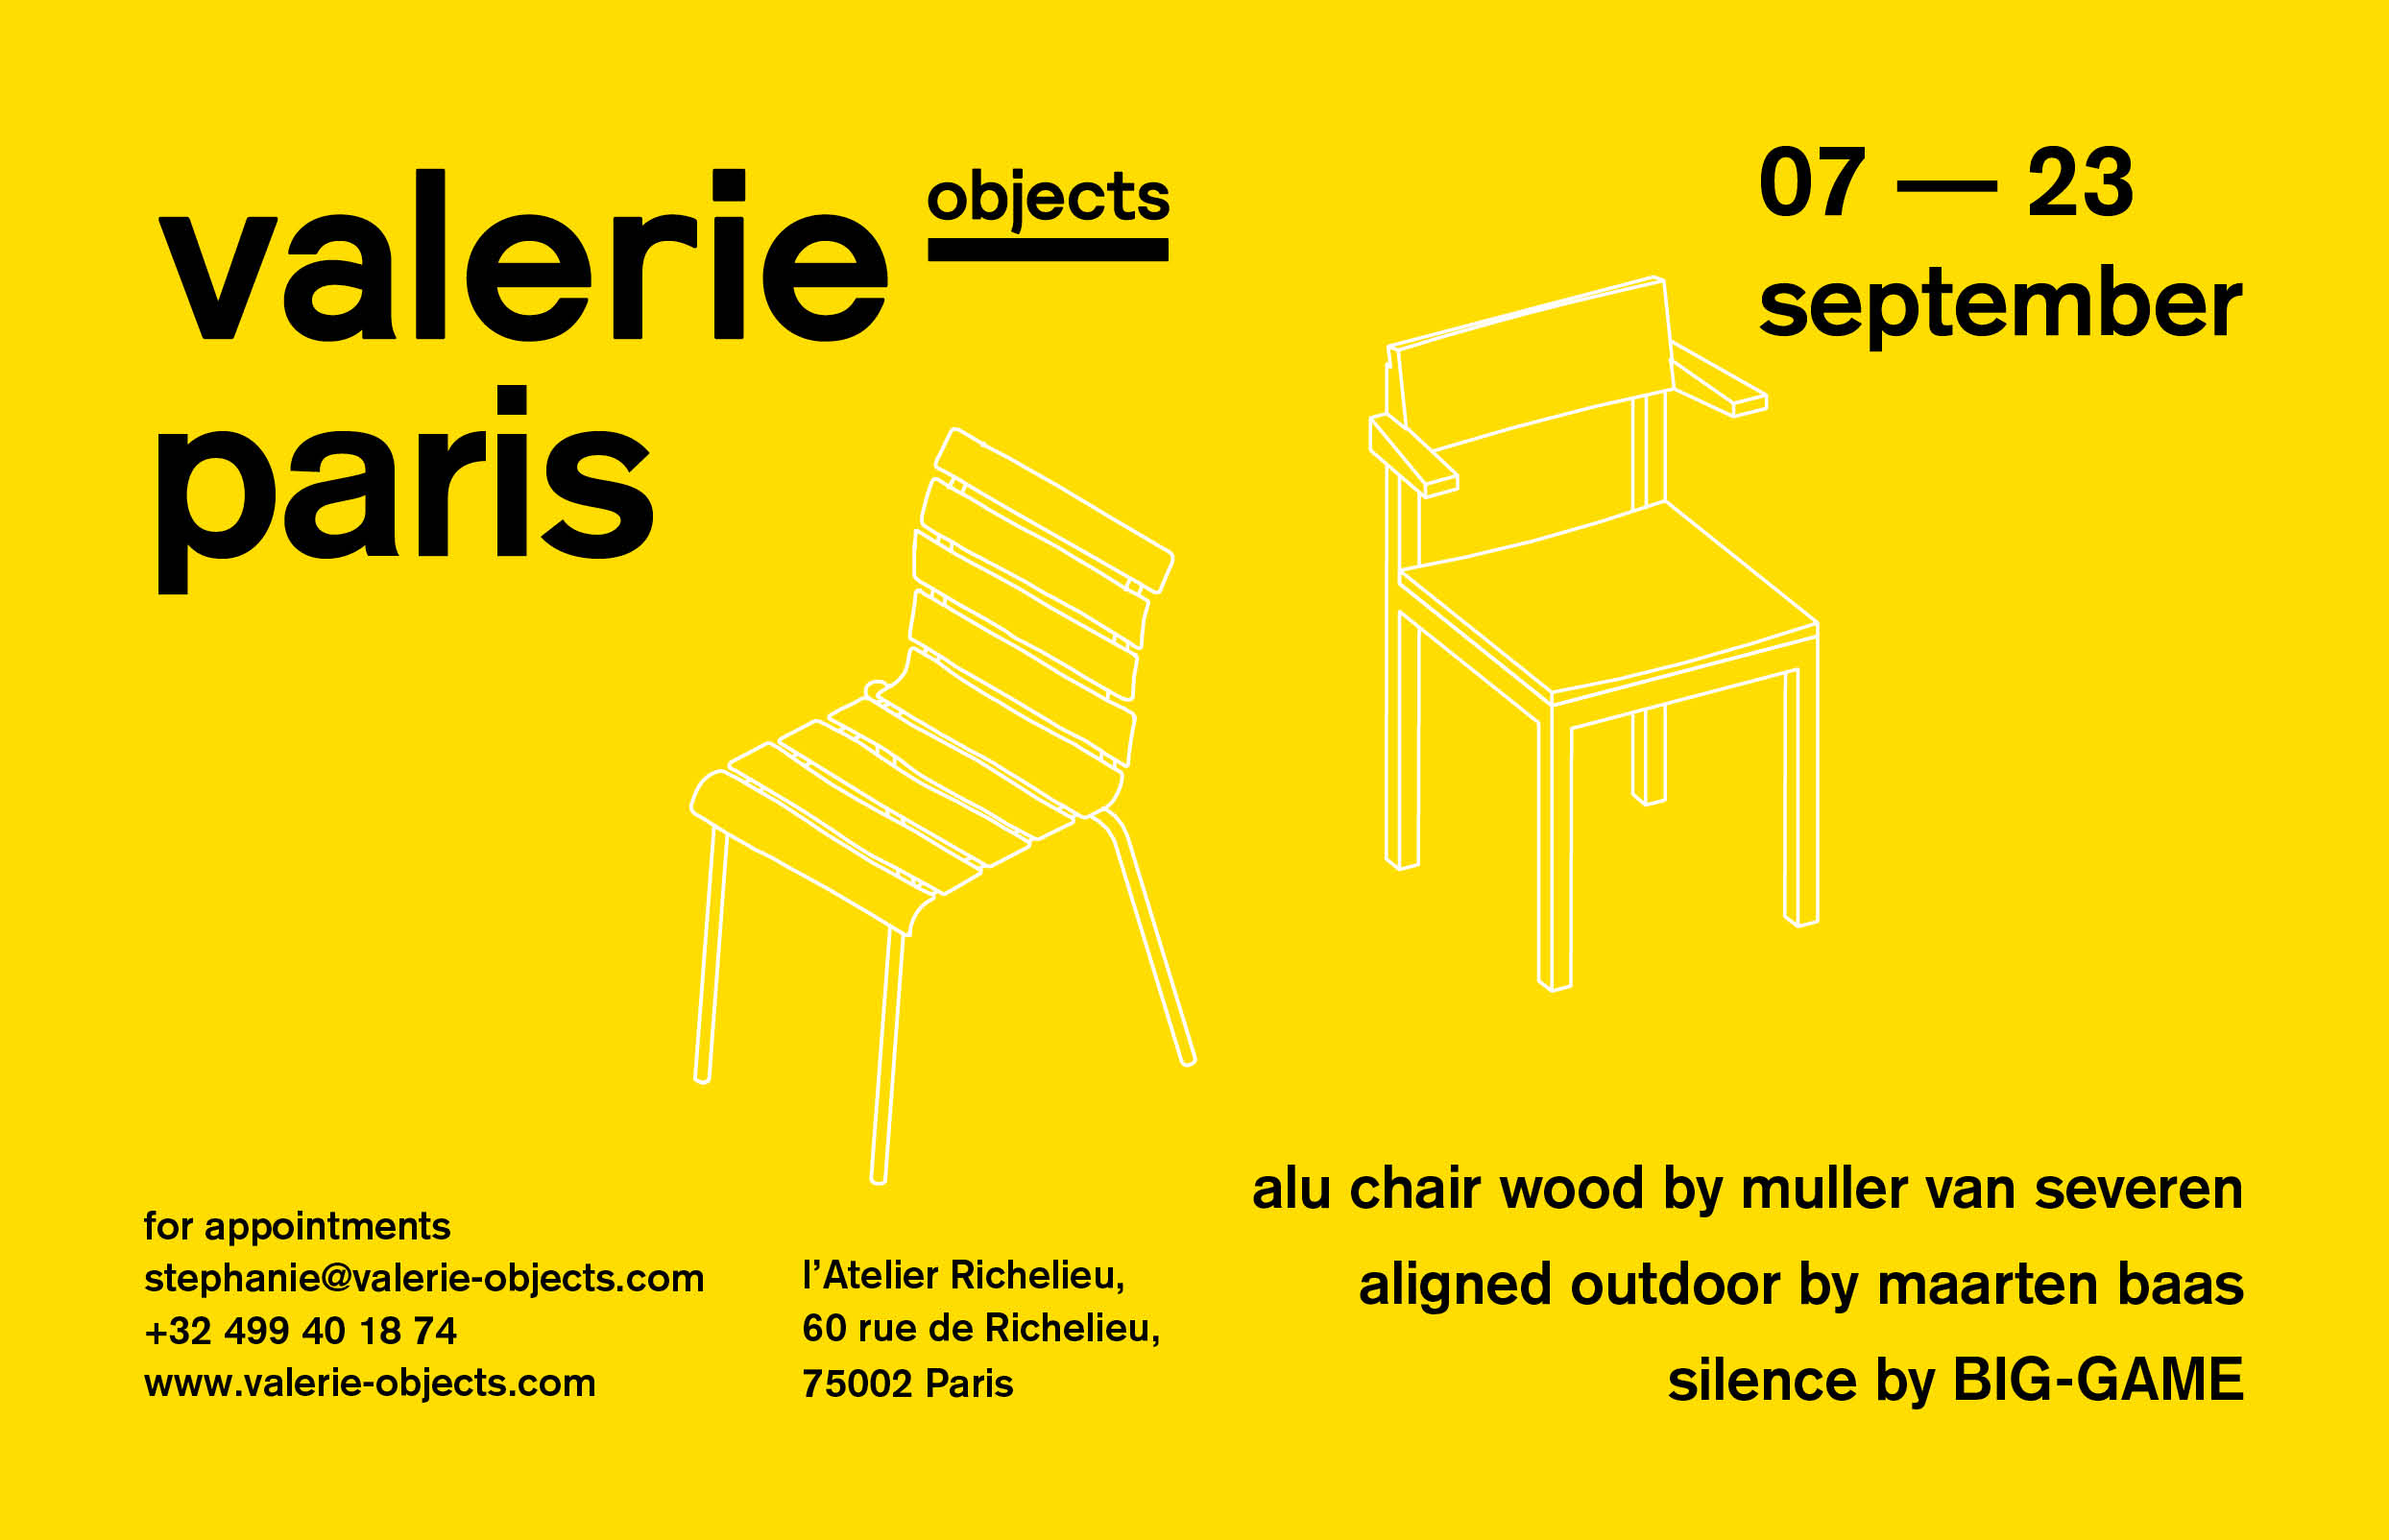 valerie_objects in Paris